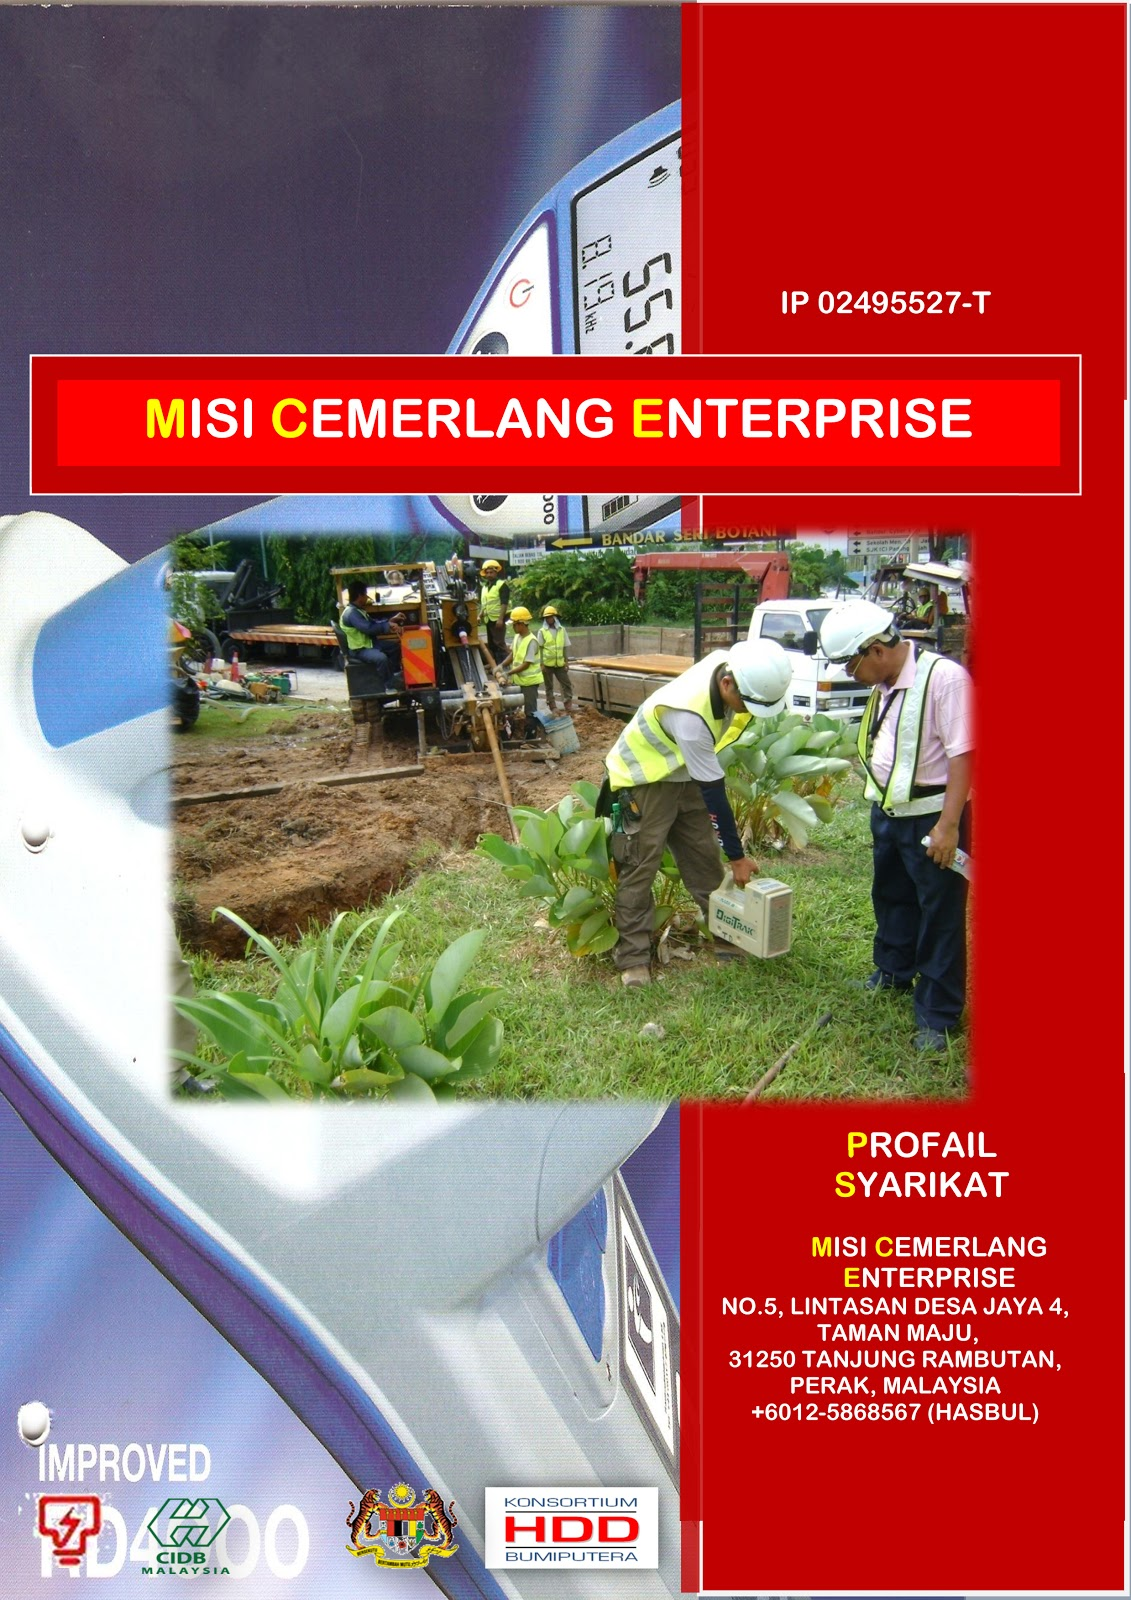 CONSORTIUM HDD CONTRACTORS MALAYSIA: Our HDD Team - Misi Cemerlang